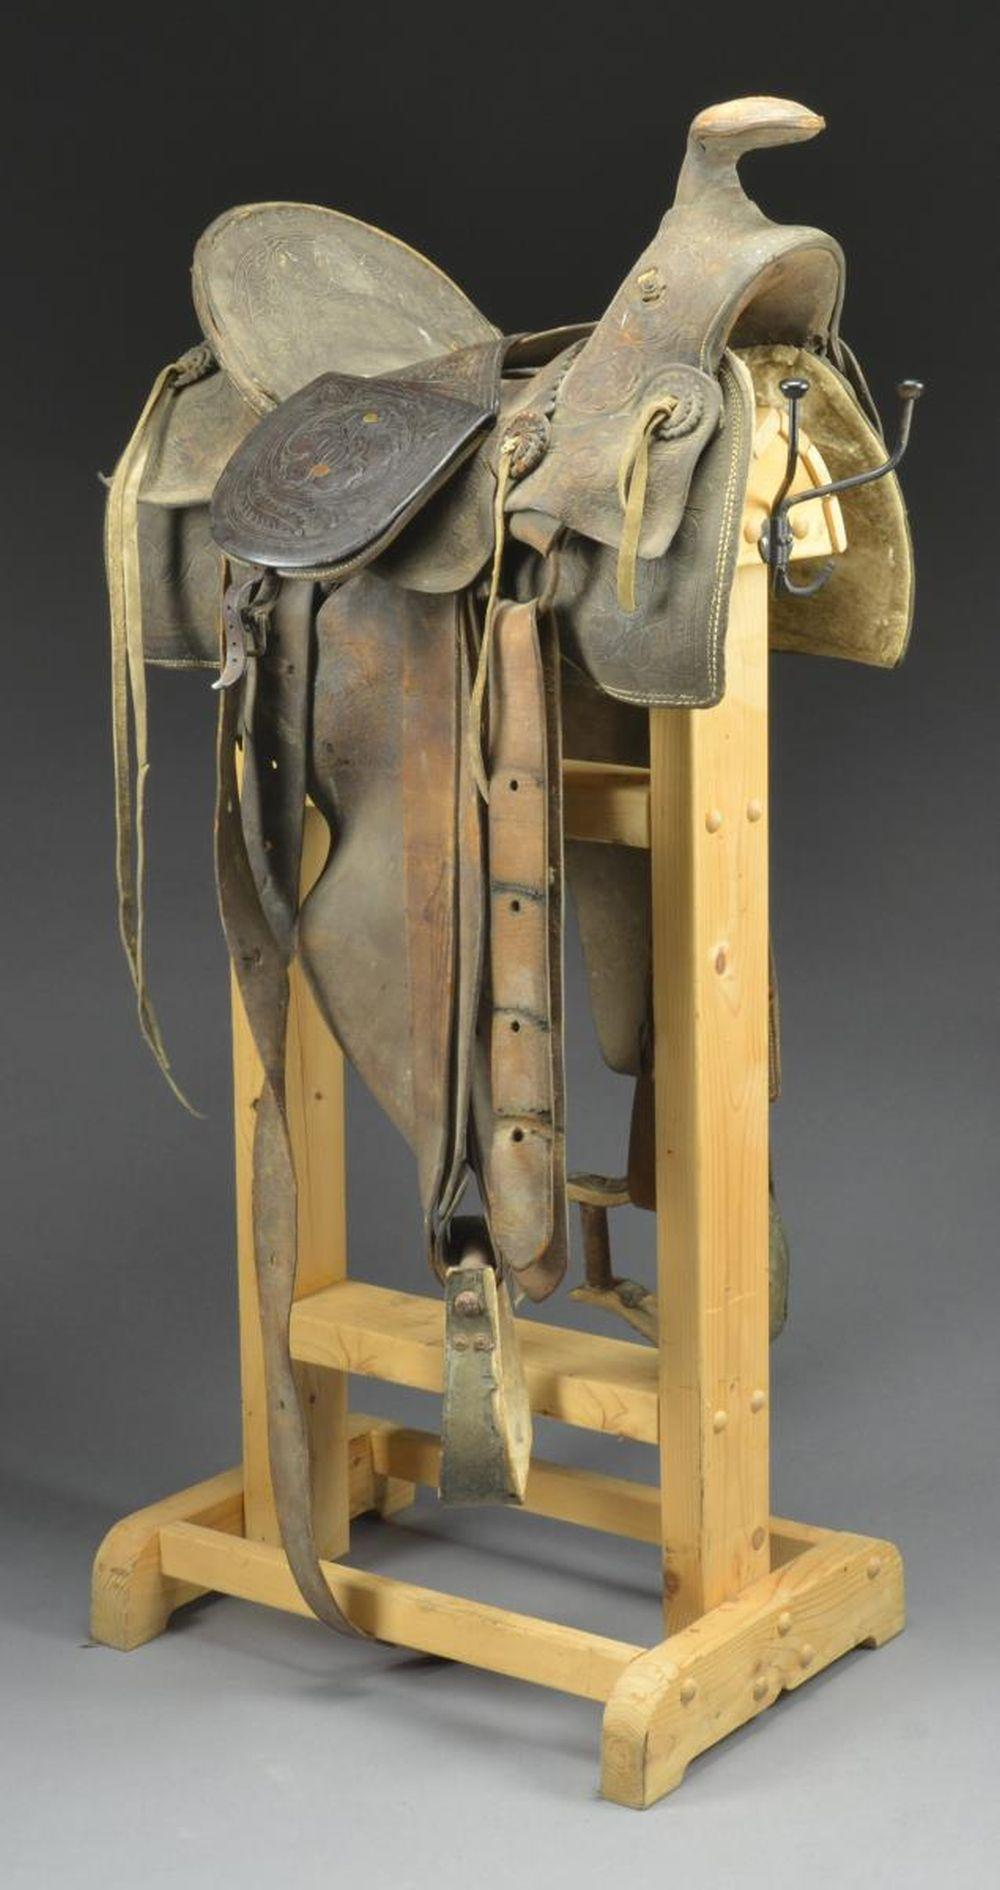 SCARCE & DESIRABLE SADDLE BY FAMOUS MAKER FRANK